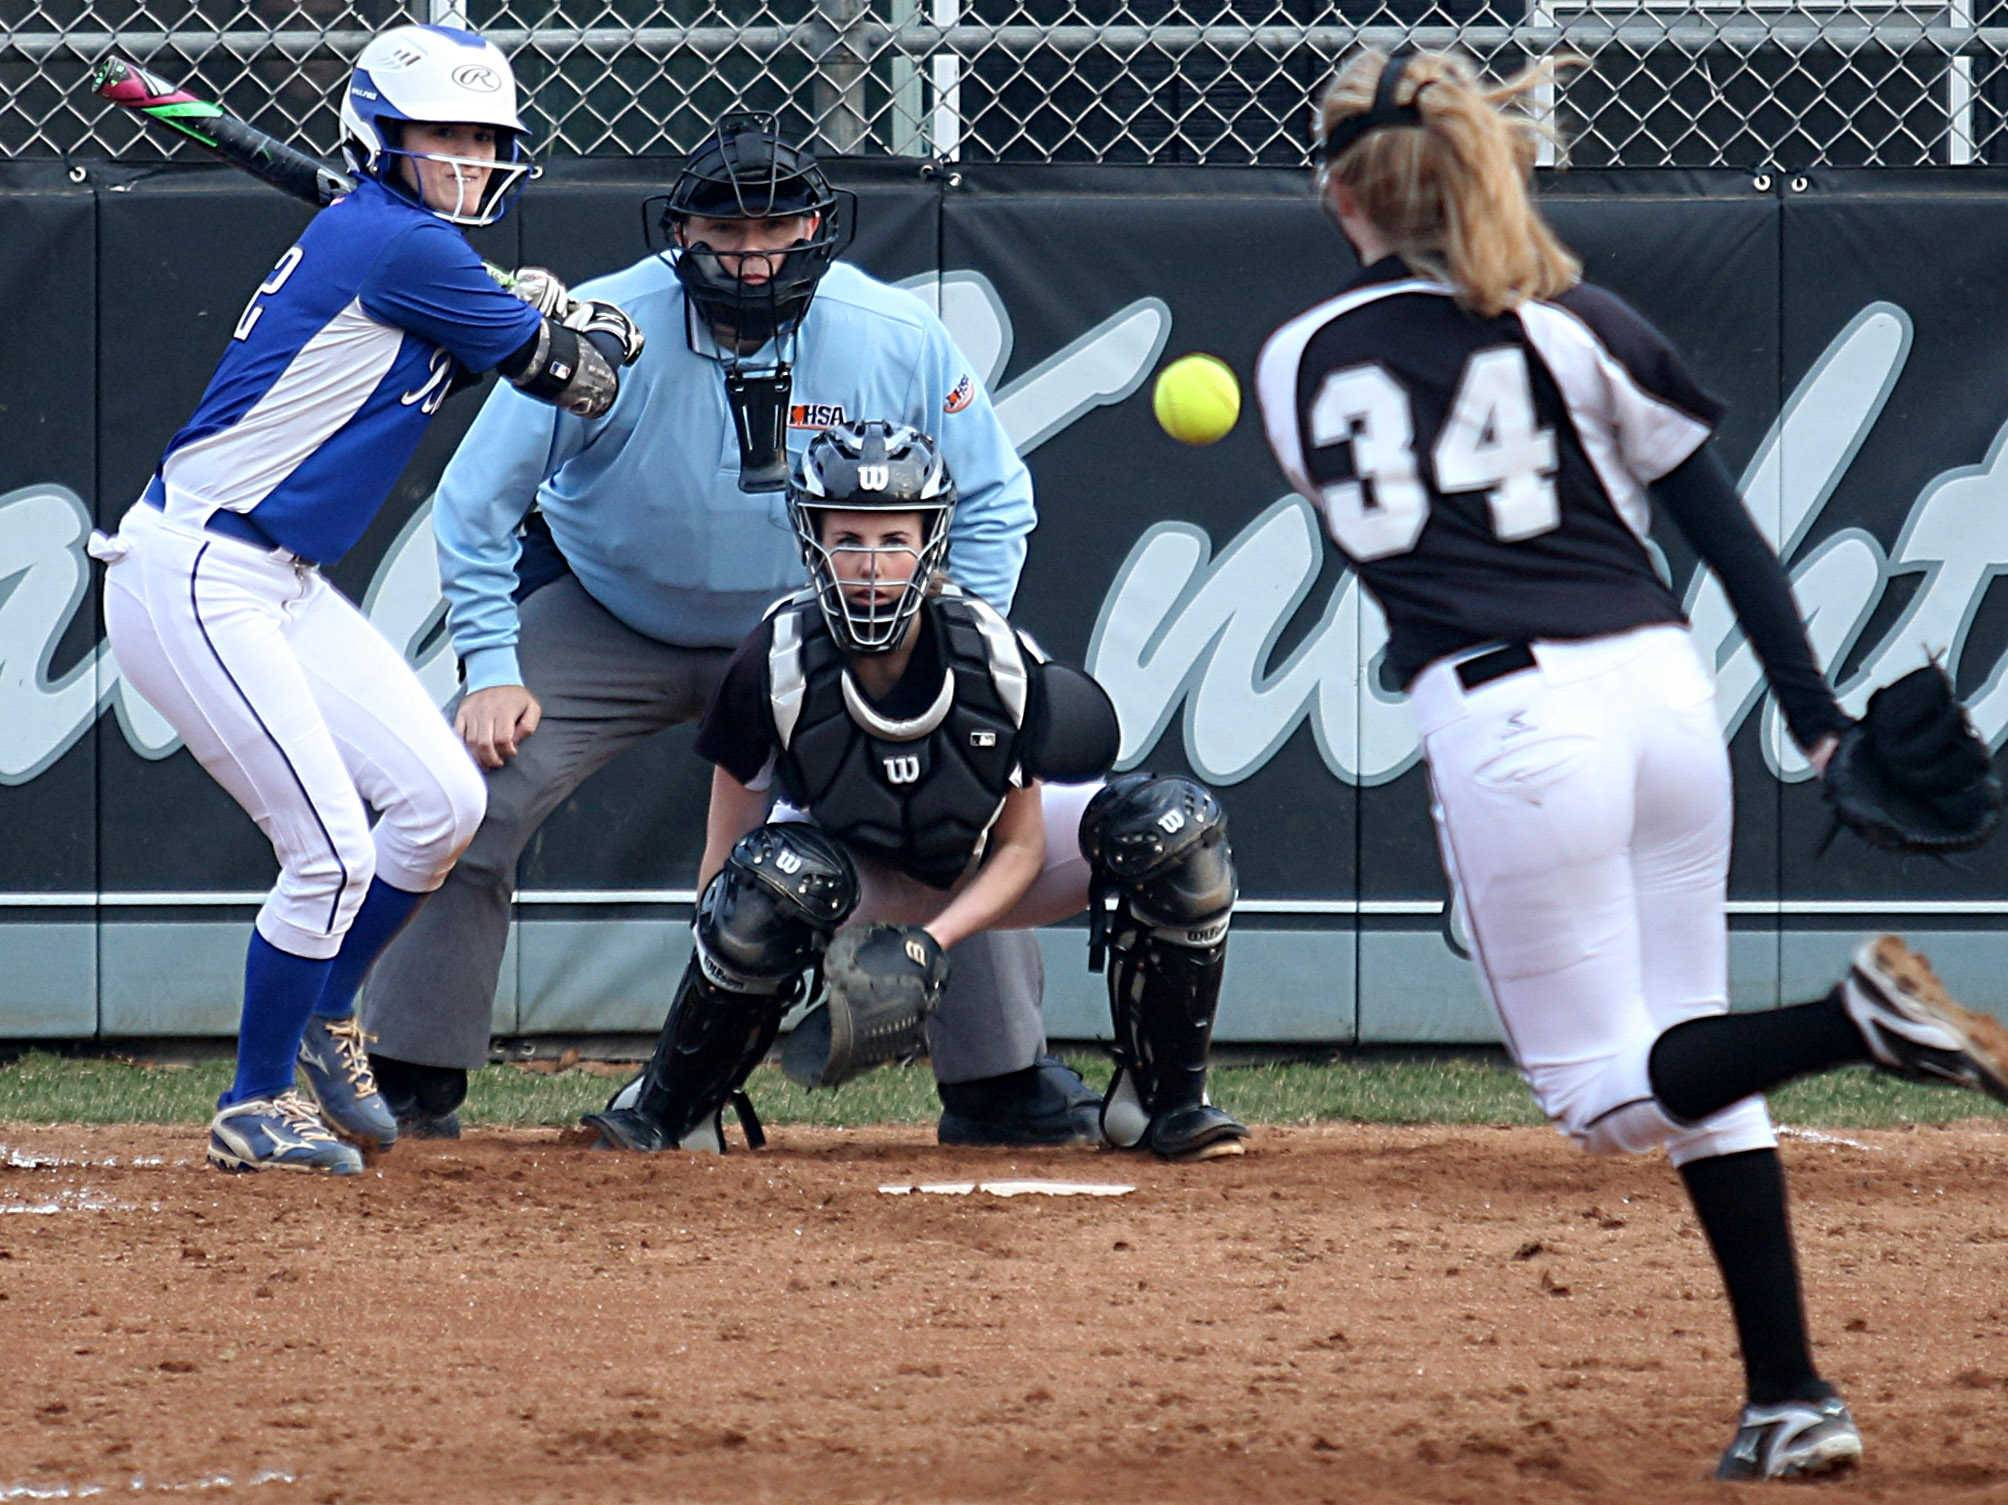 Kaneland's pitcher Emilee Erickson makes an offering as catcher Hailey Roach and  Burlington Central hitter Megan Wiater prepare during varsity softball at Kaneland Monday night.